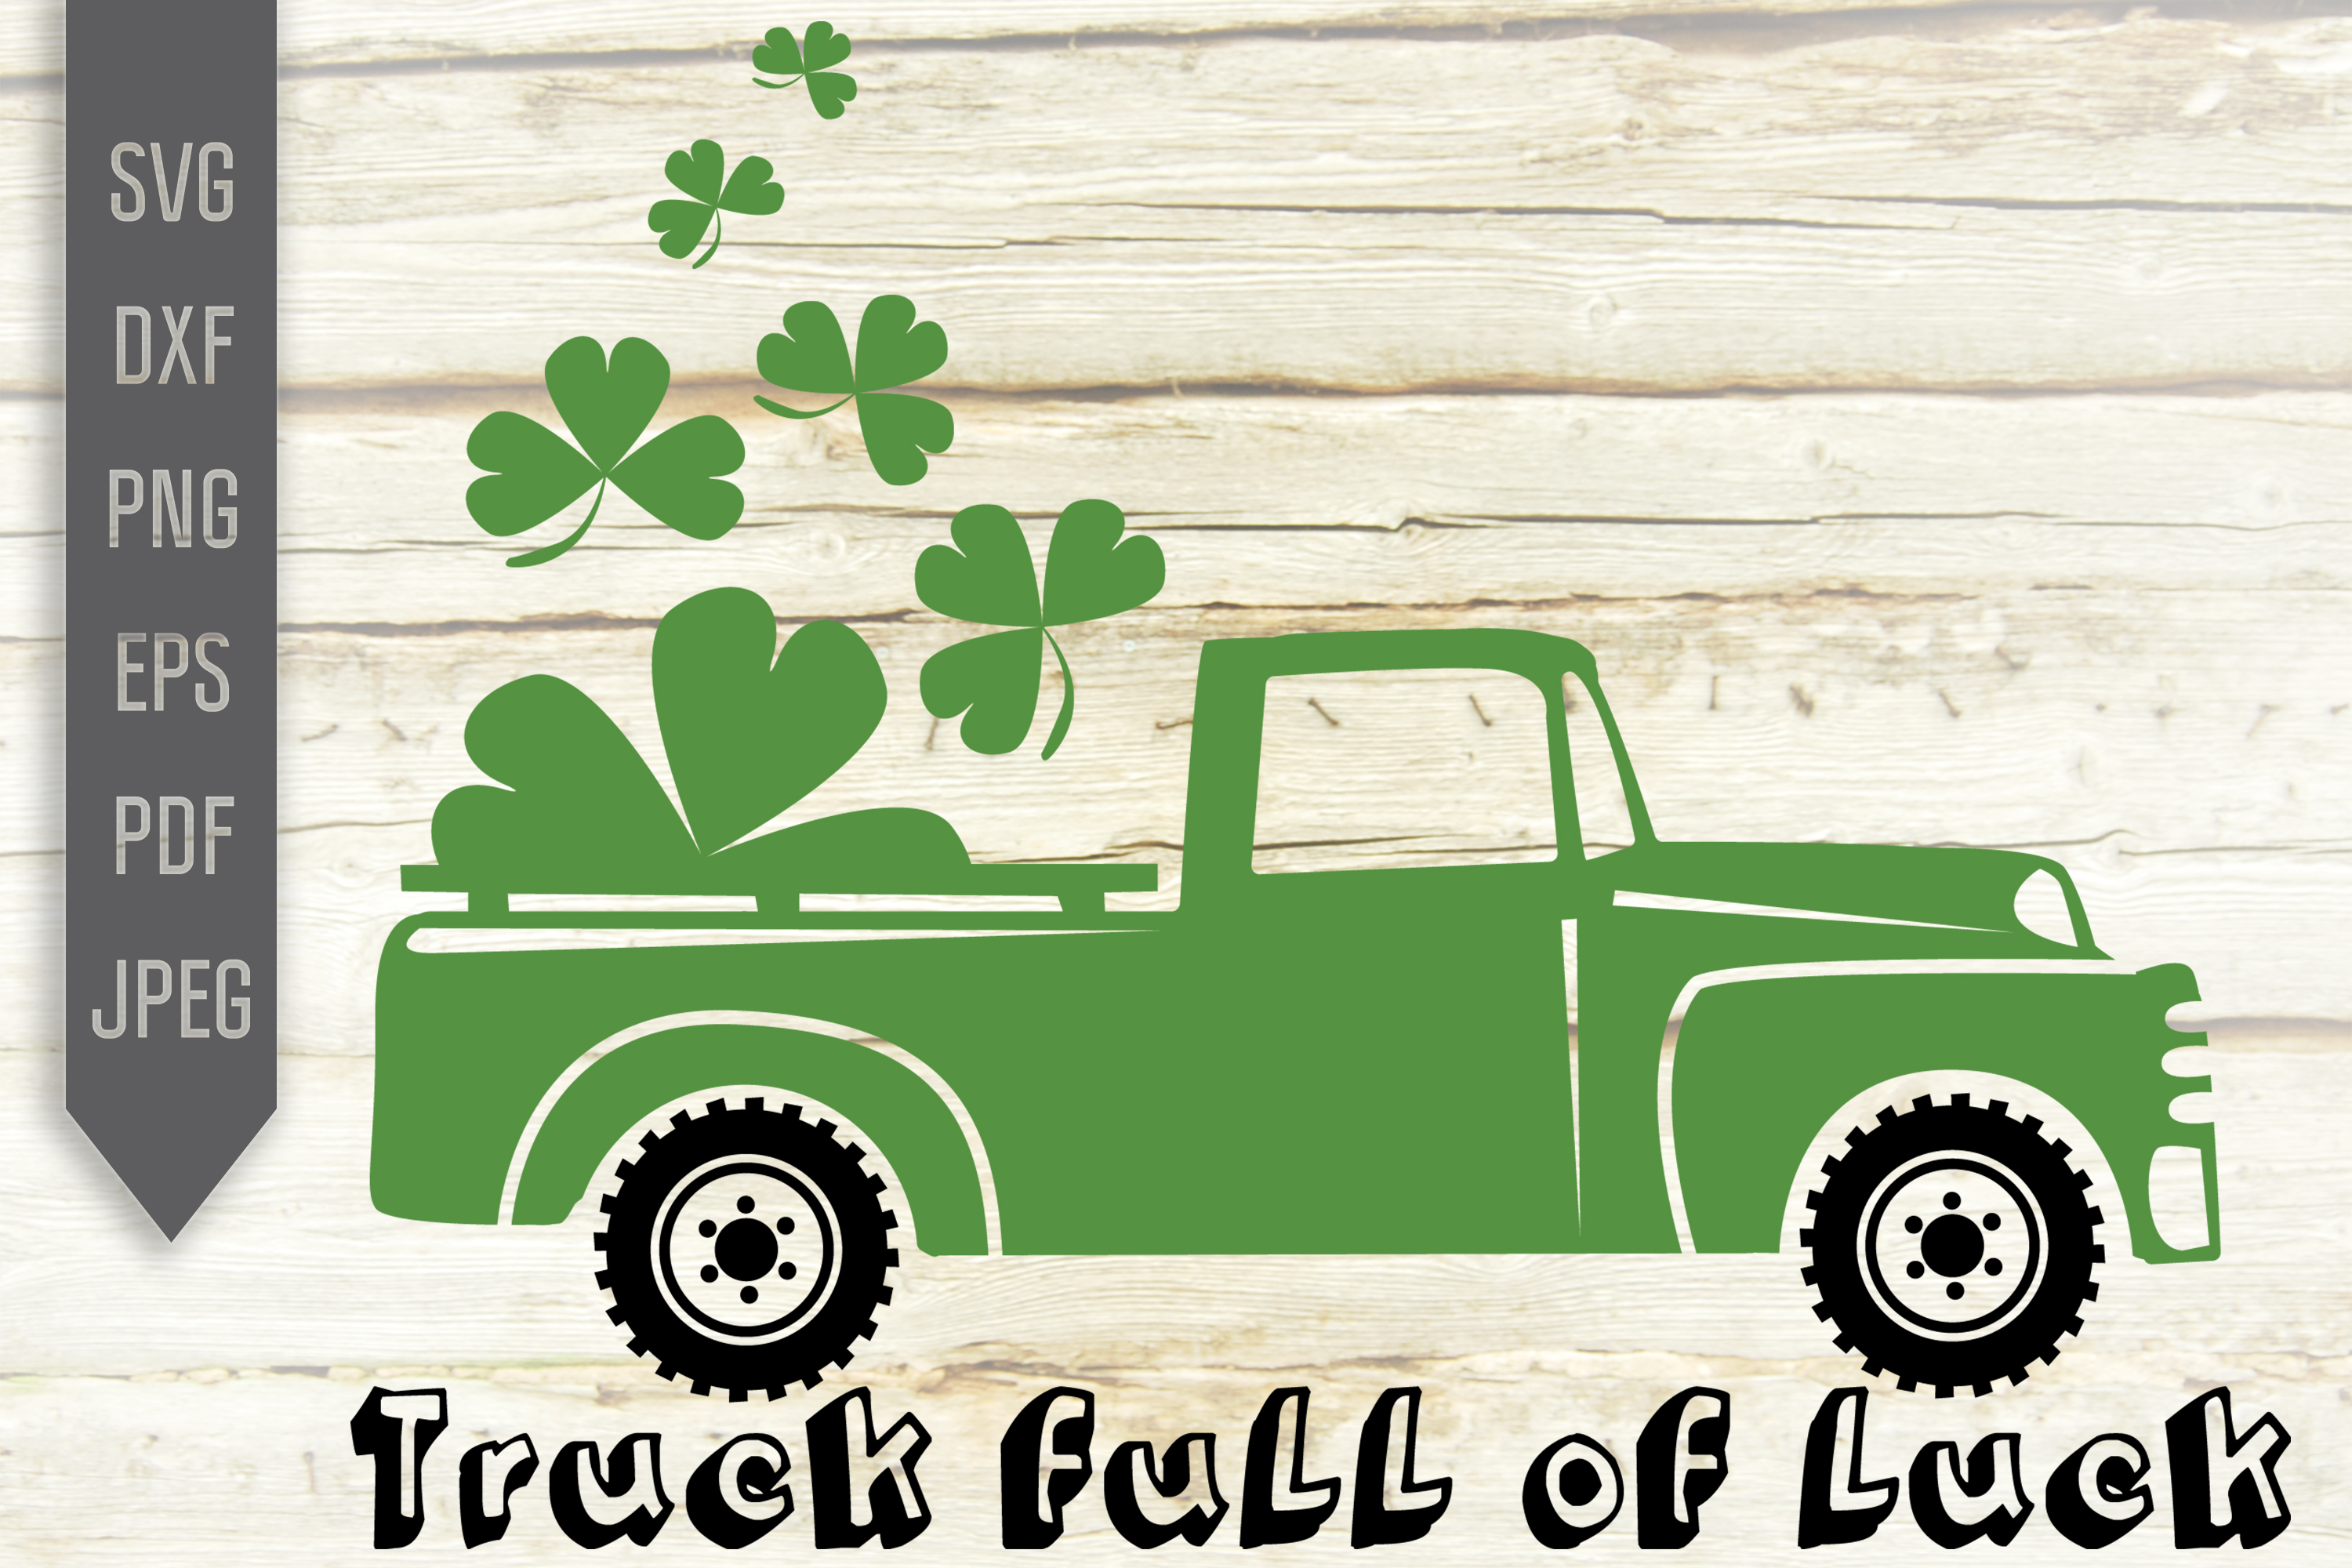 Download Free Truck Full Of Luck Graphic By Svglaboratory Creative Fabrica for Cricut Explore, Silhouette and other cutting machines.